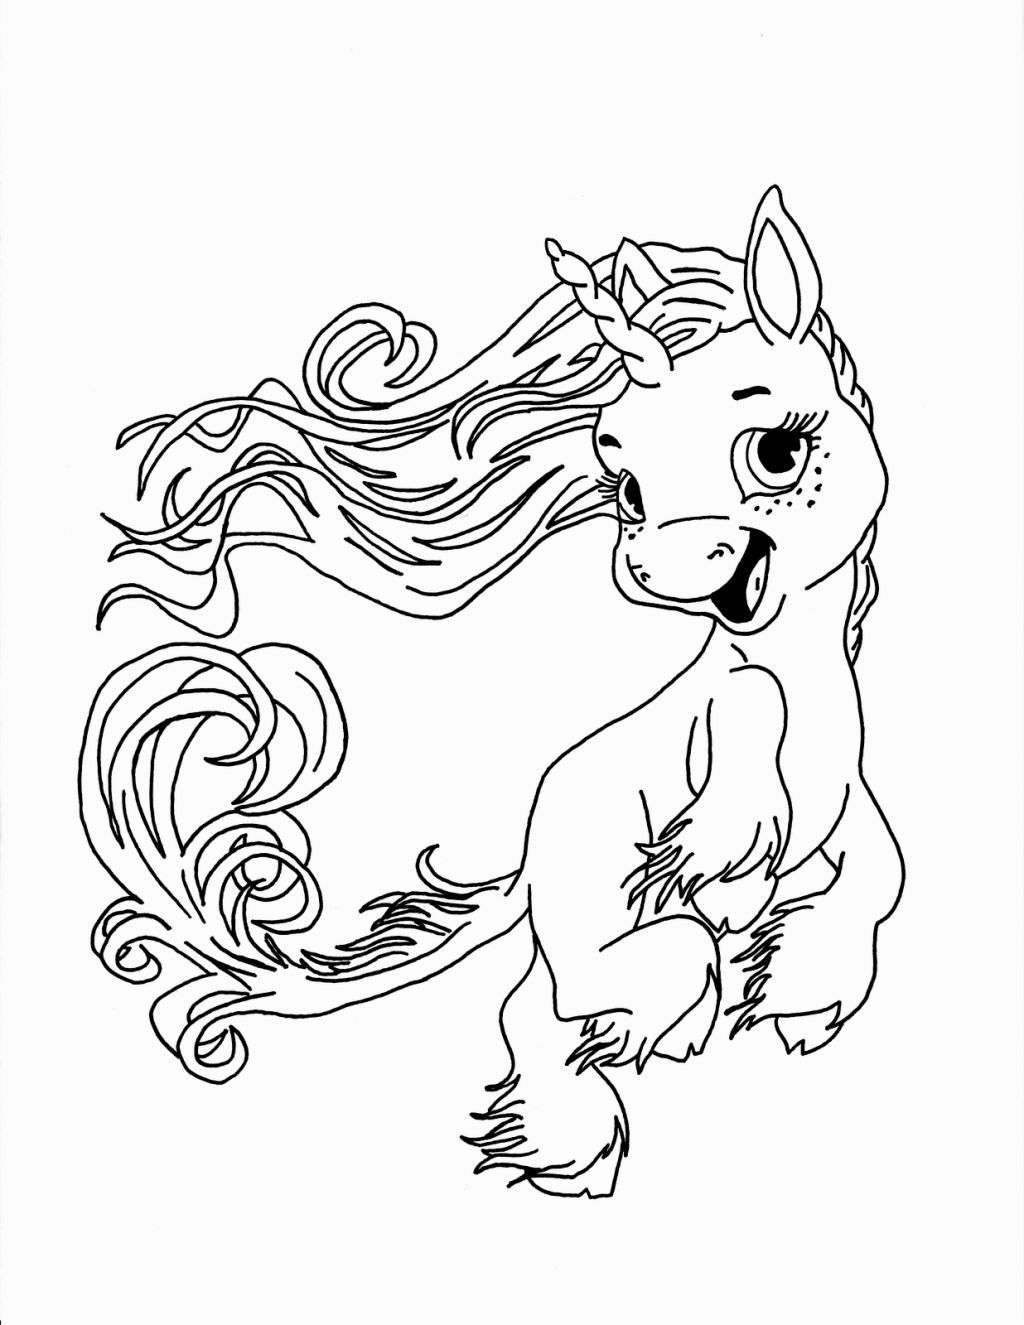 Printable Unicorn Coloring Pages Coloring Pages Unicorn Coloring Pages For Printable